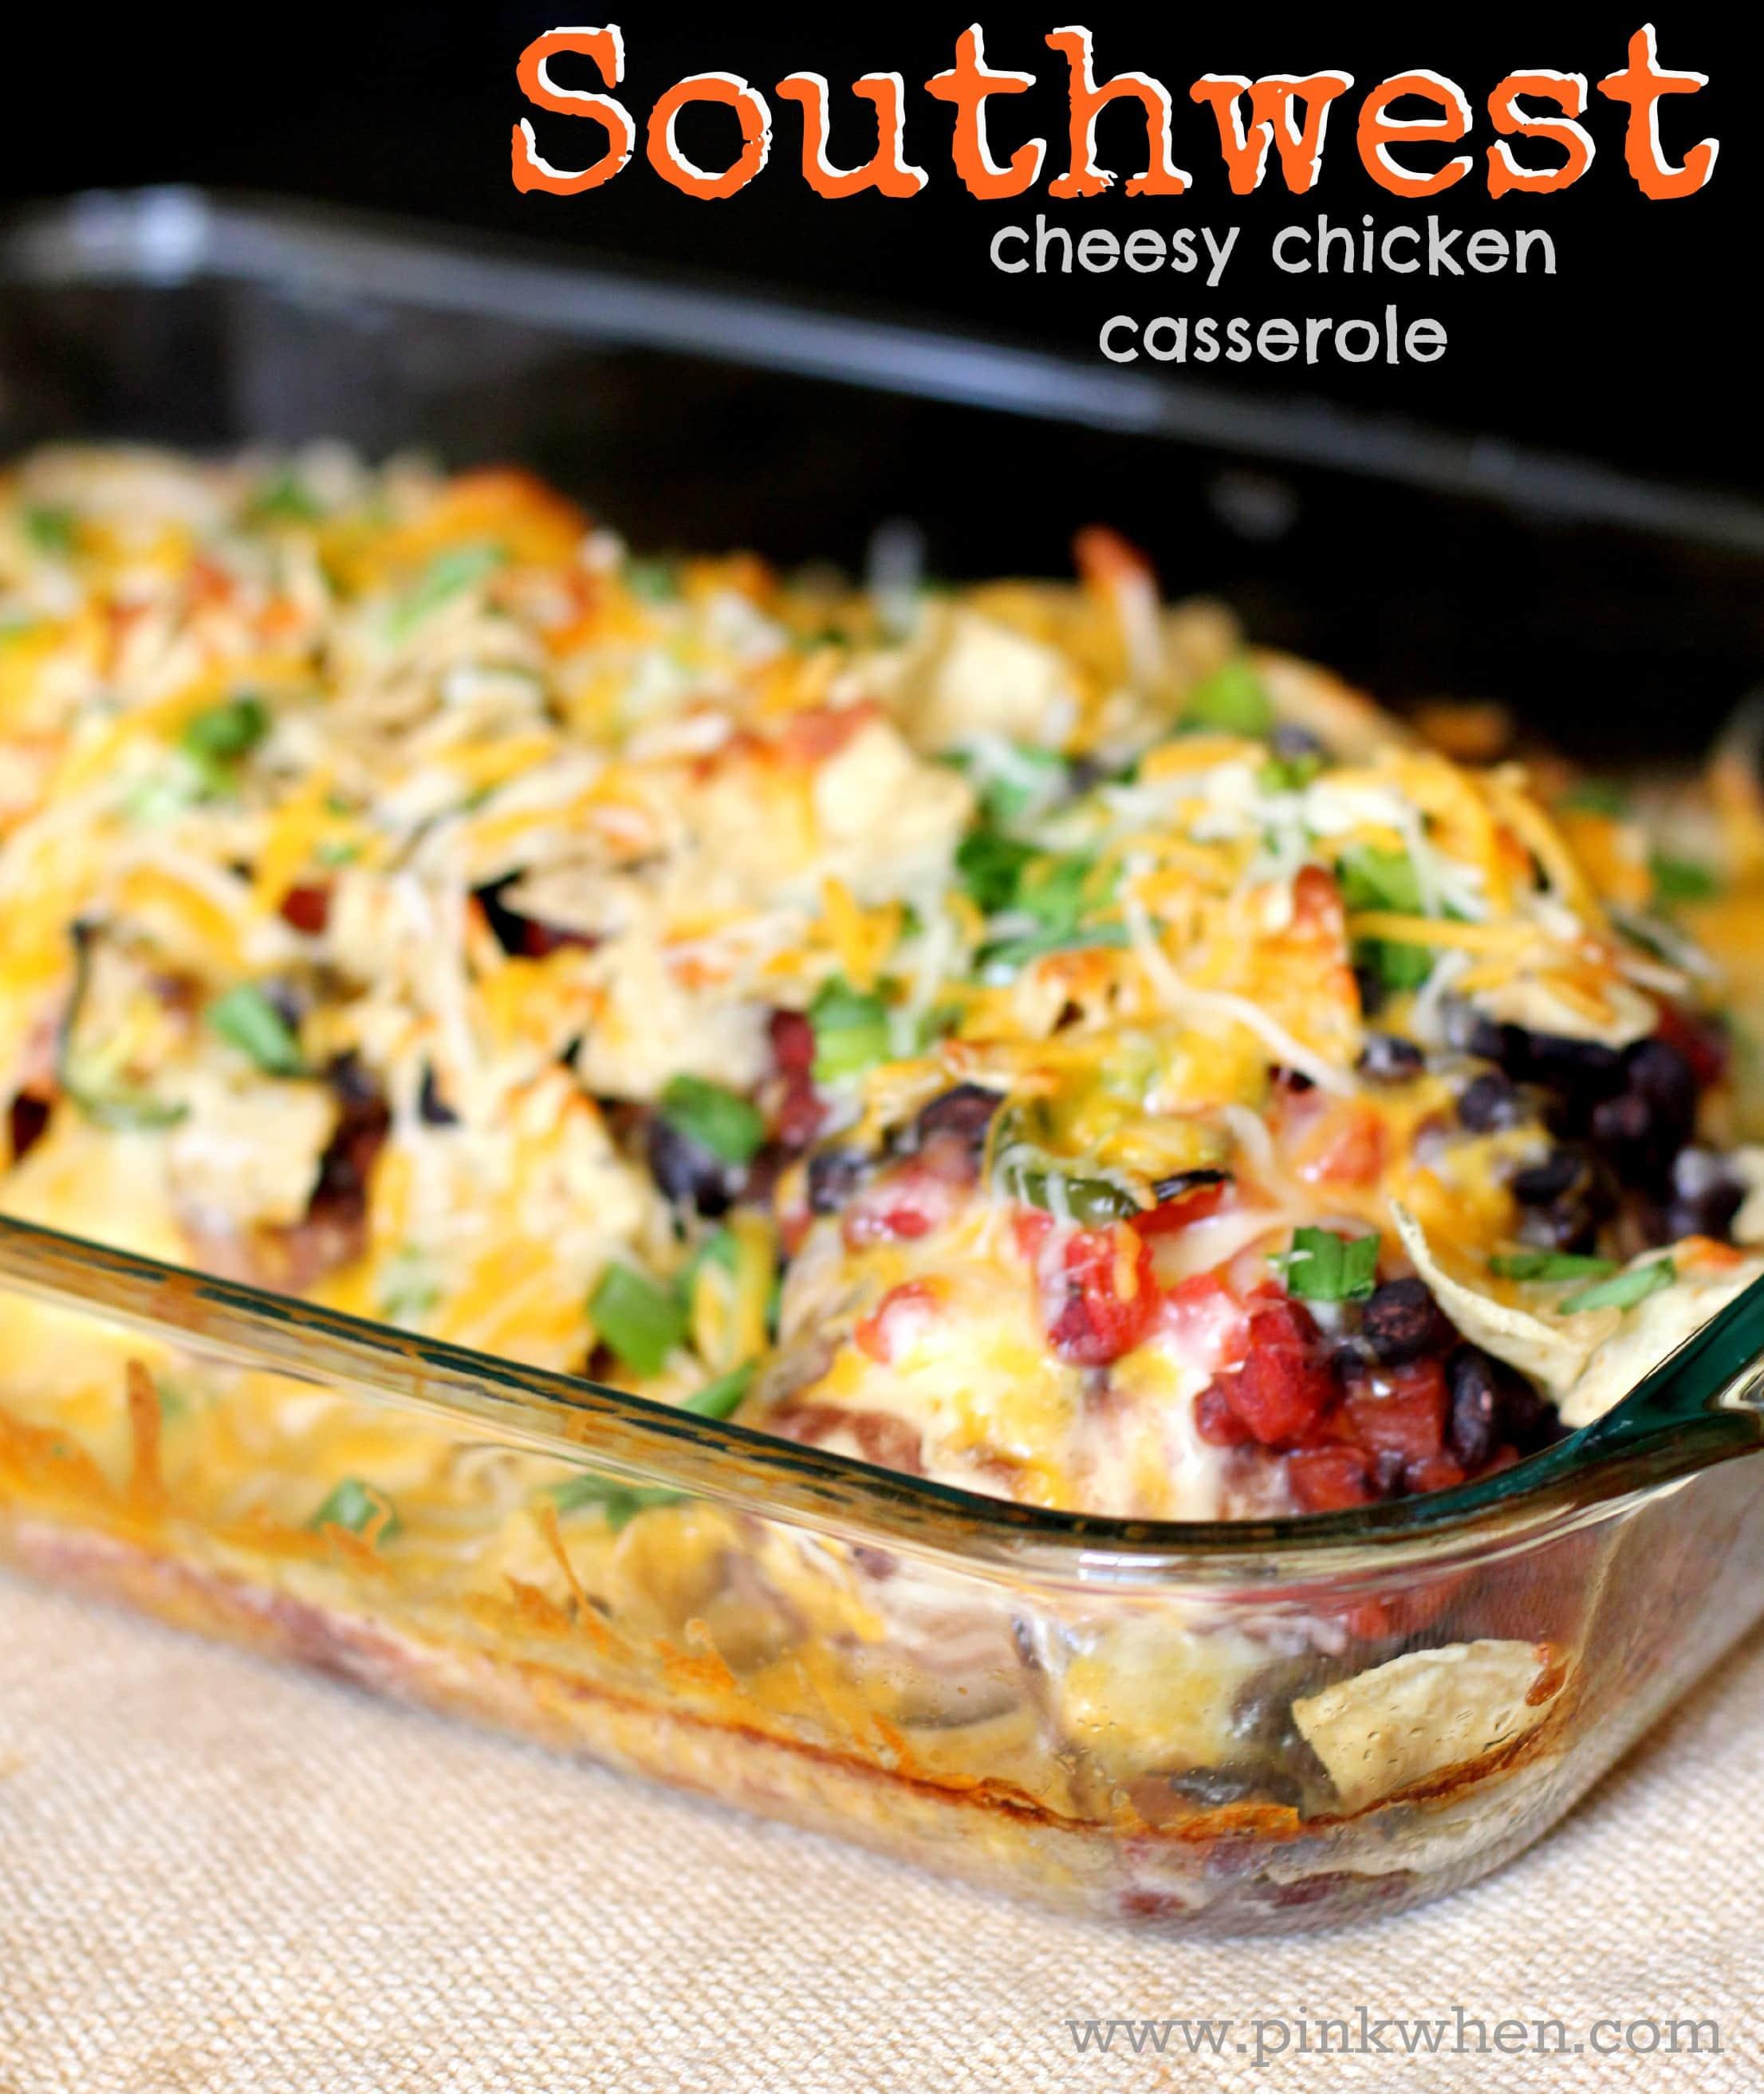 Break through your worn weeknight dinner habits tonight with one of these bubbly chicken casseroles.